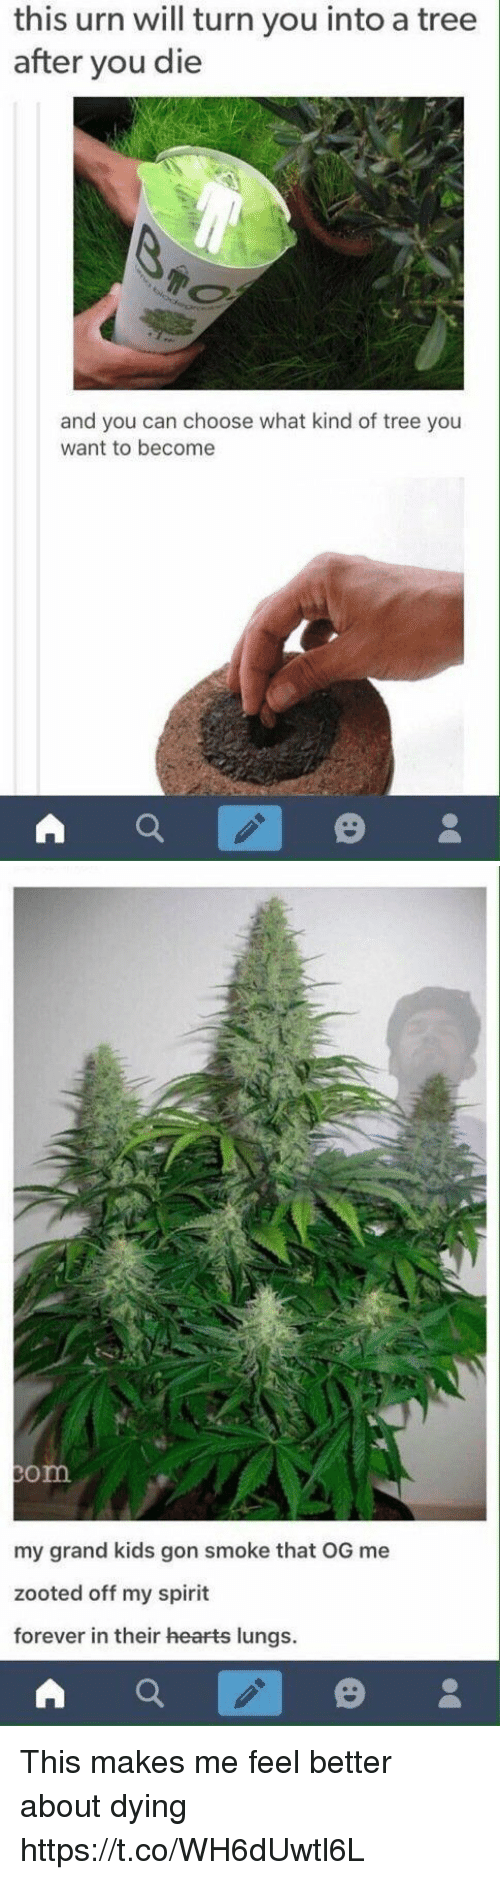 Zooted: this urn will turn you into a tree  after you die  and you can choose what kind of tree you  want to become   om  my grand kids gon smoke that OG me  zooted off my spirit  forever in their hearts lungs. This makes me feel better about dying https://t.co/WH6dUwtl6L